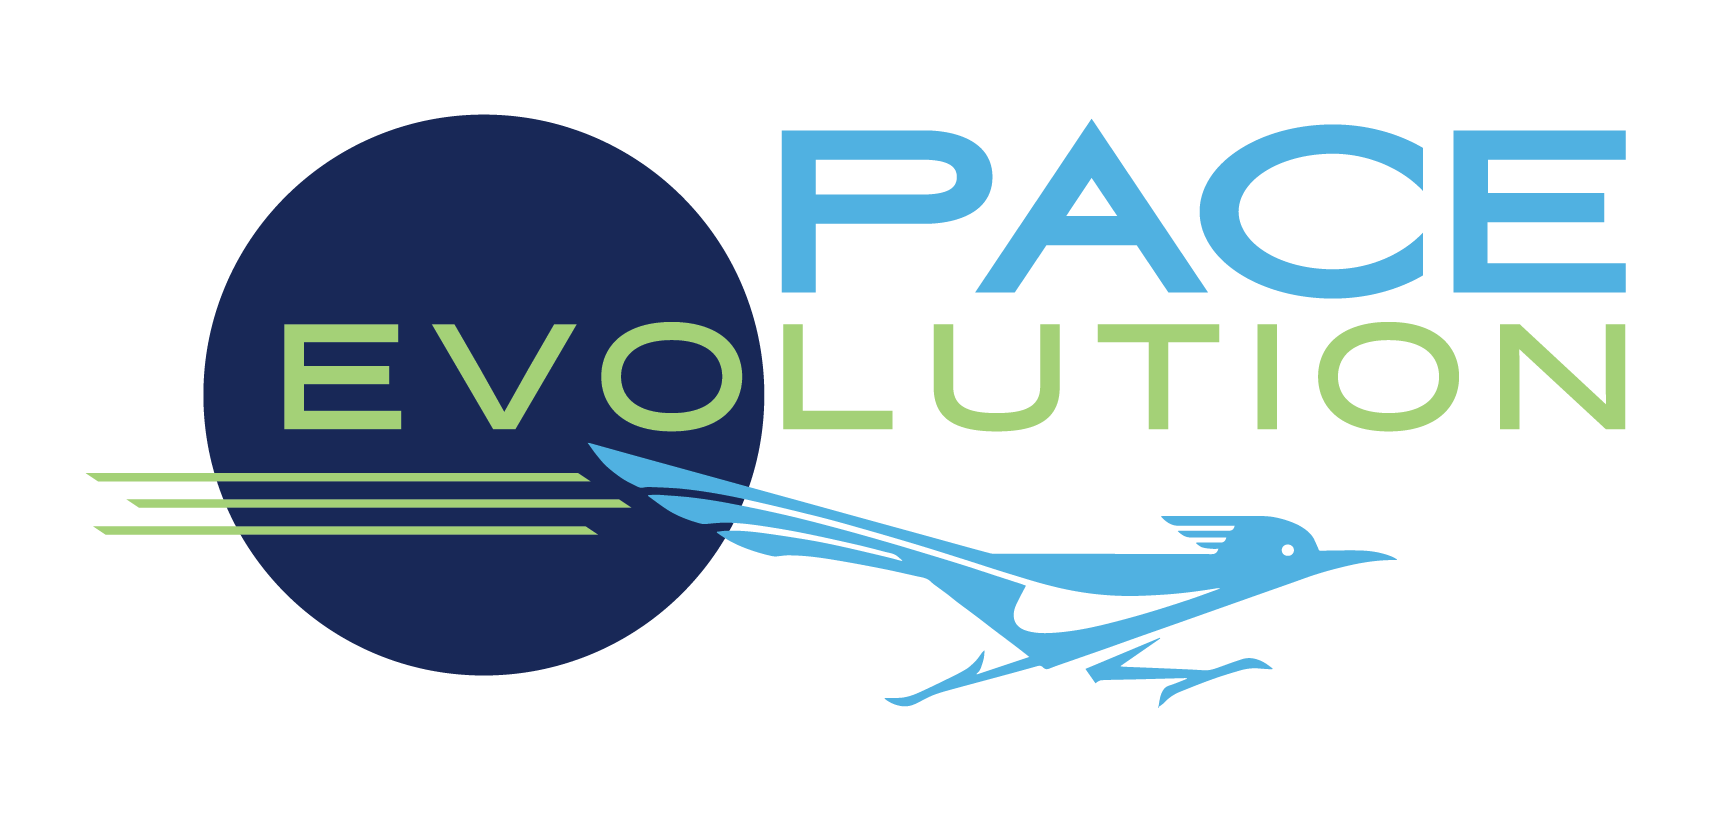 pace evolution mobile app logo